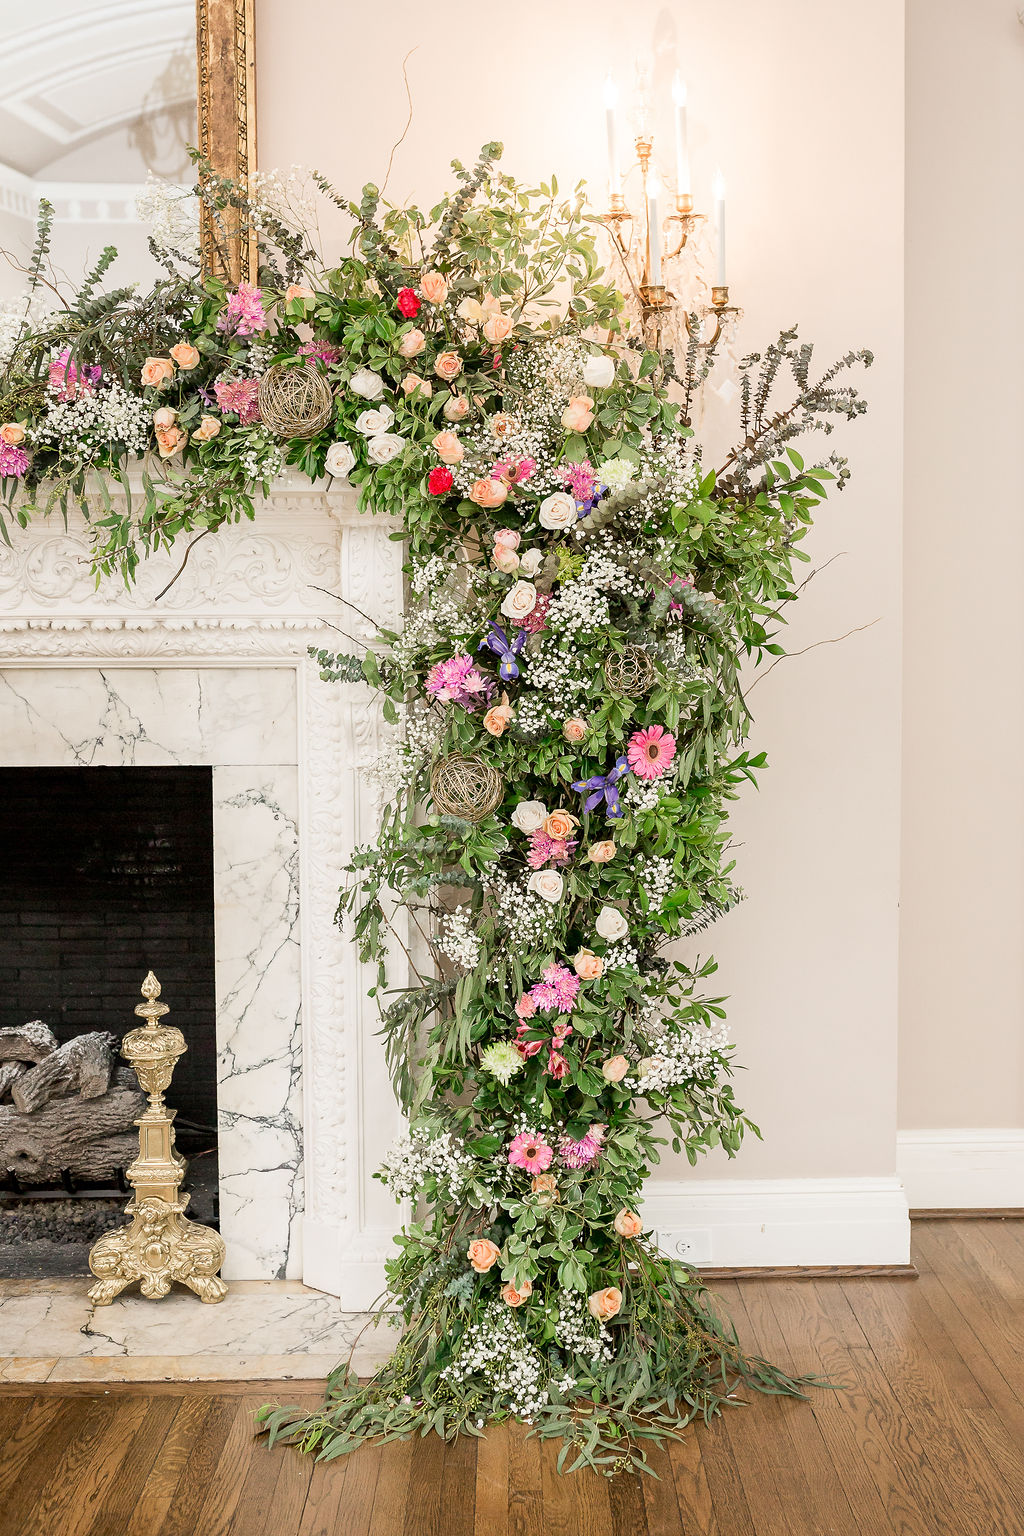 large and colorful floral installation on a fireplace